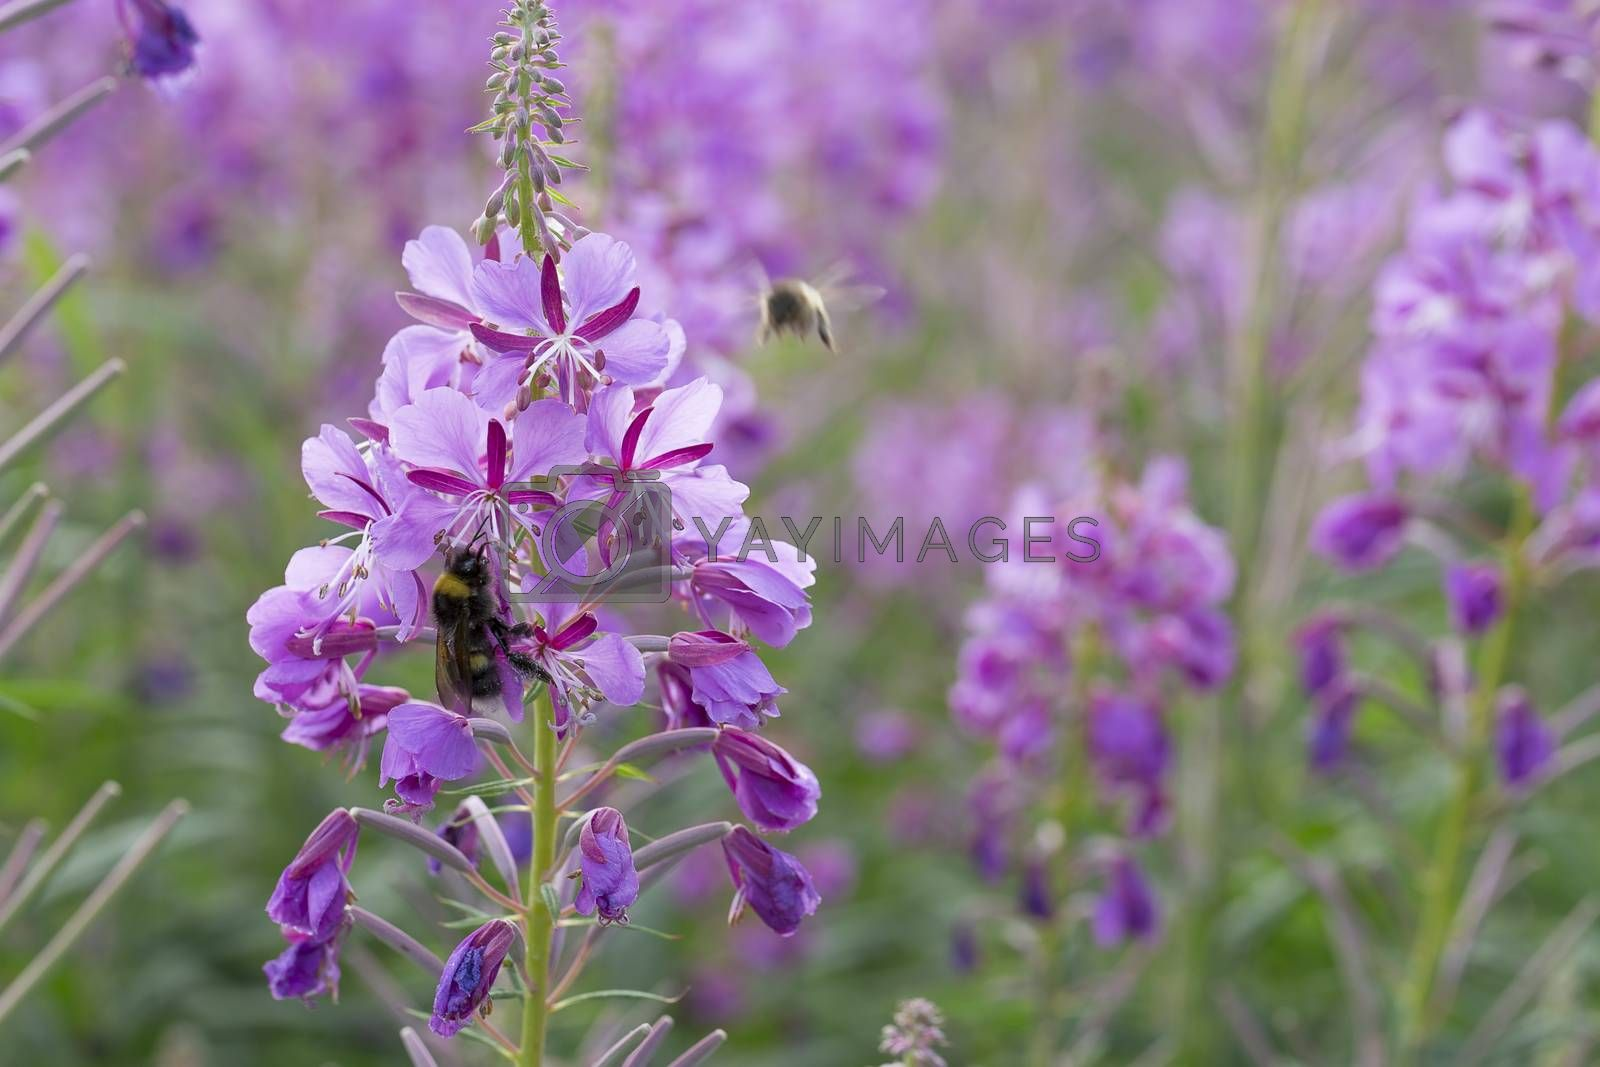 Fireweed Flowers with Bumble Bee close up.